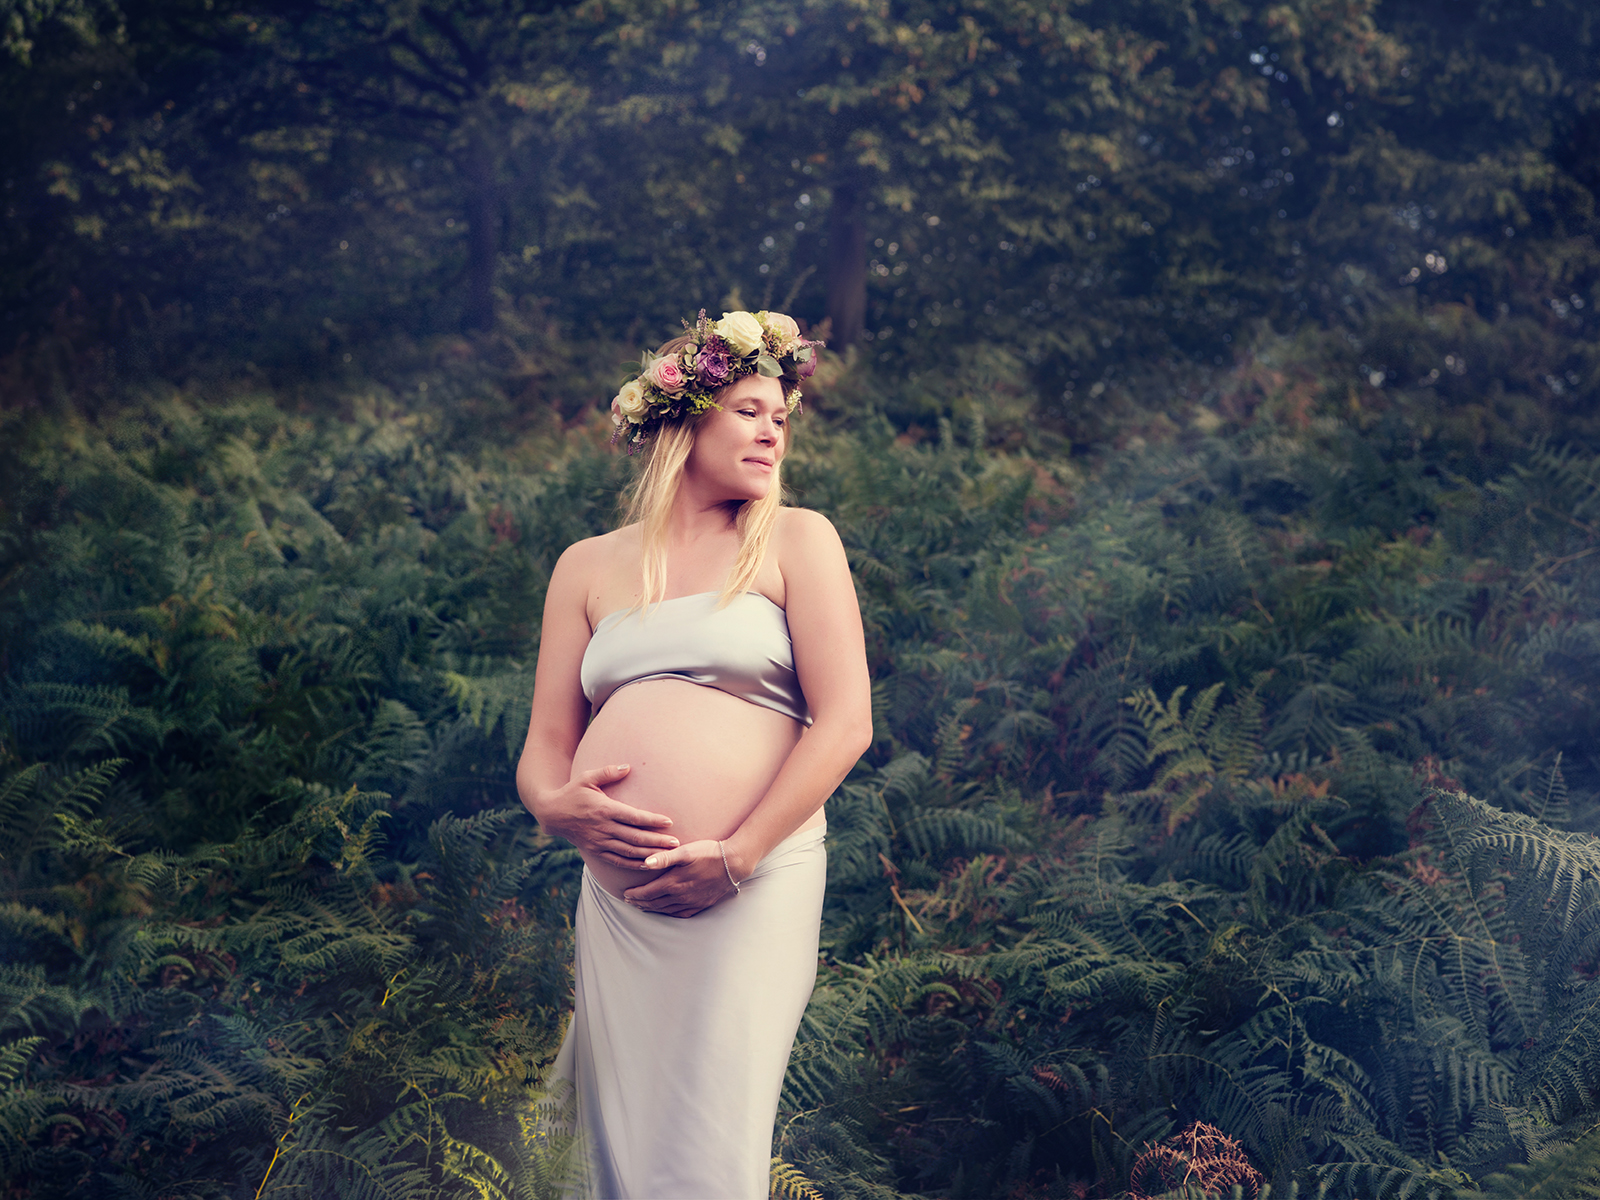 An outdoor maternity portrait of a mum-to-be wearing a flower crown and silky drapes.